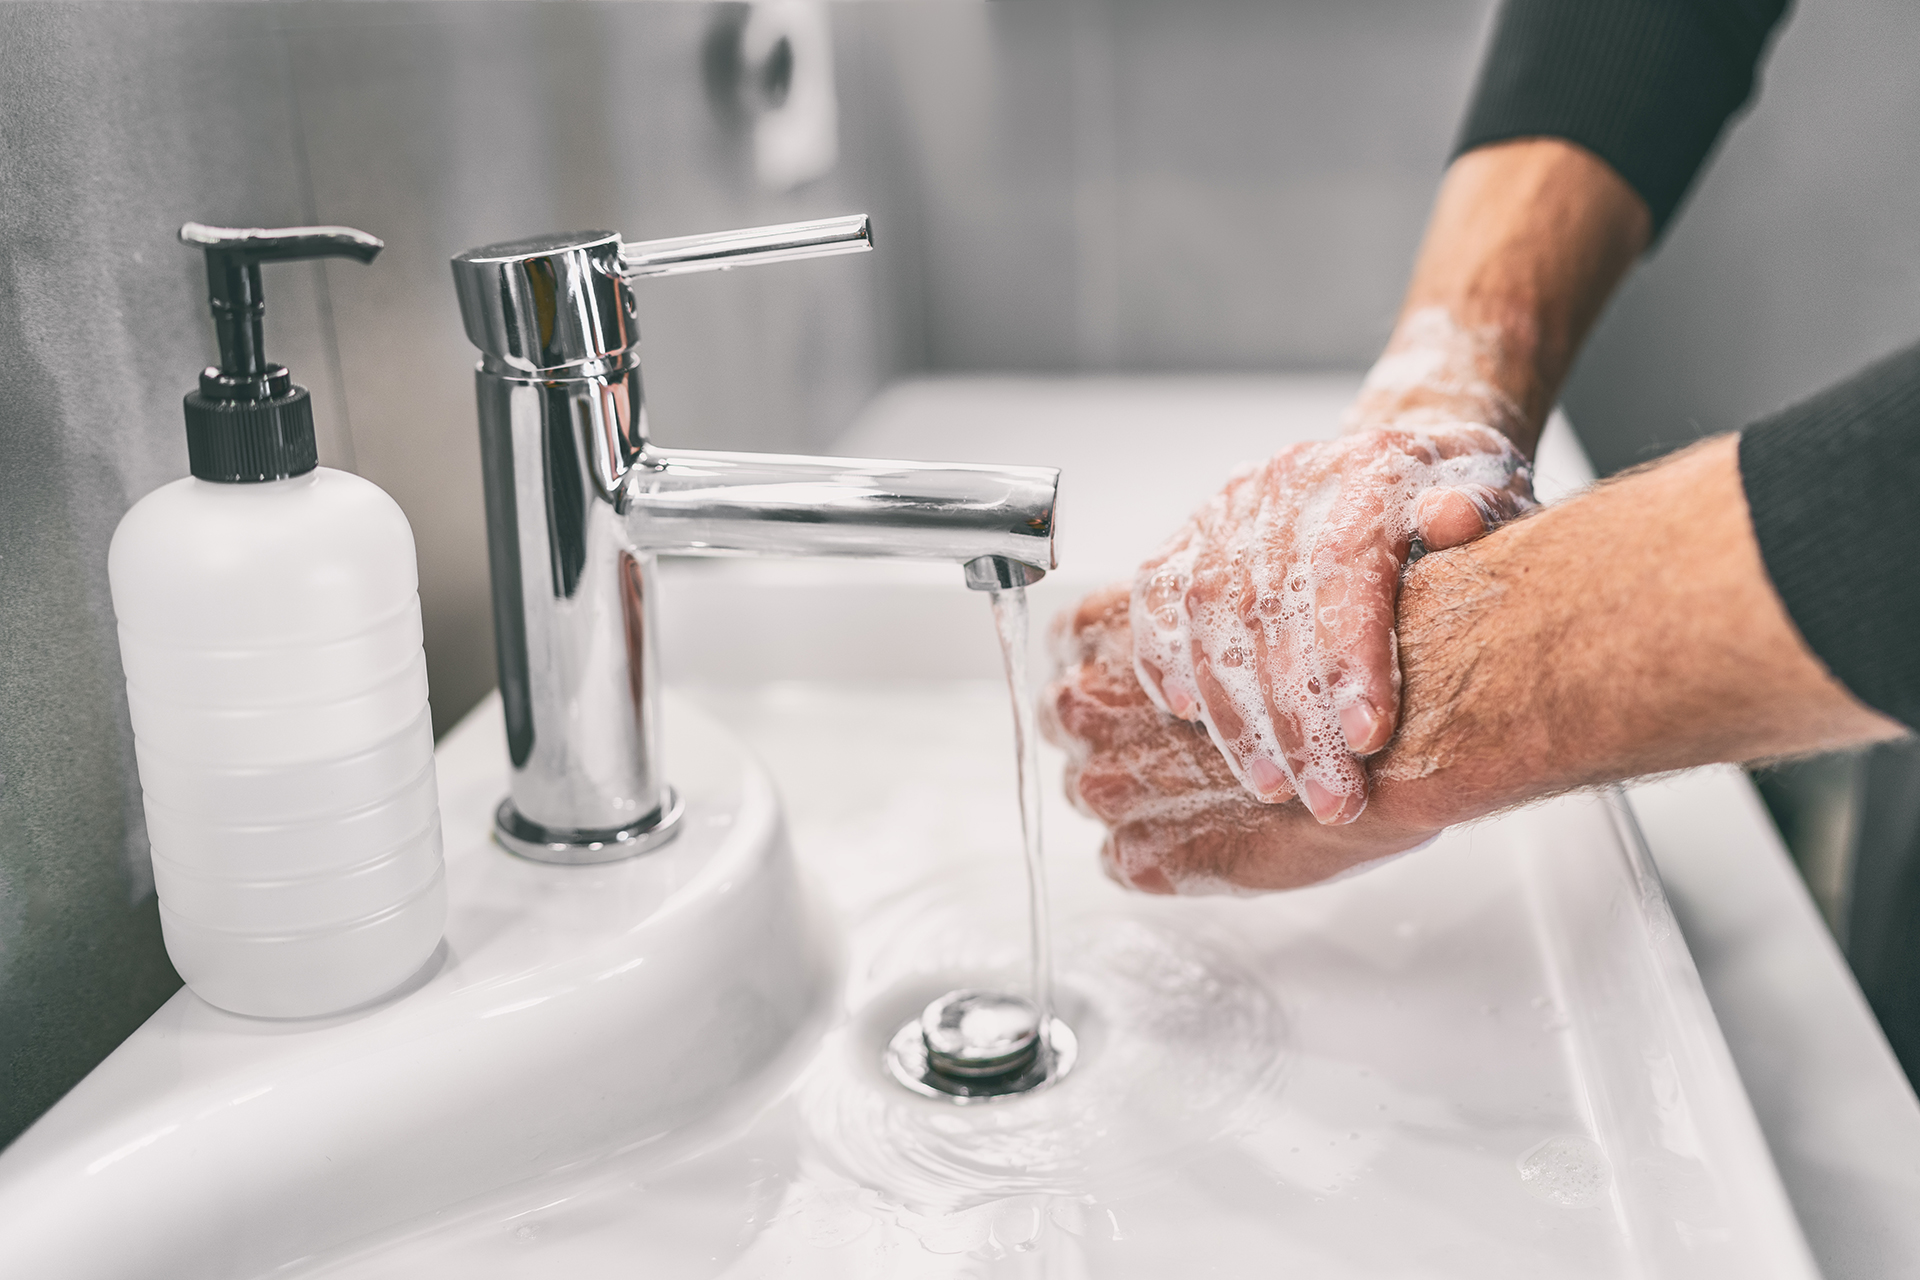 Washing hands to prevent the spread of COVID-19